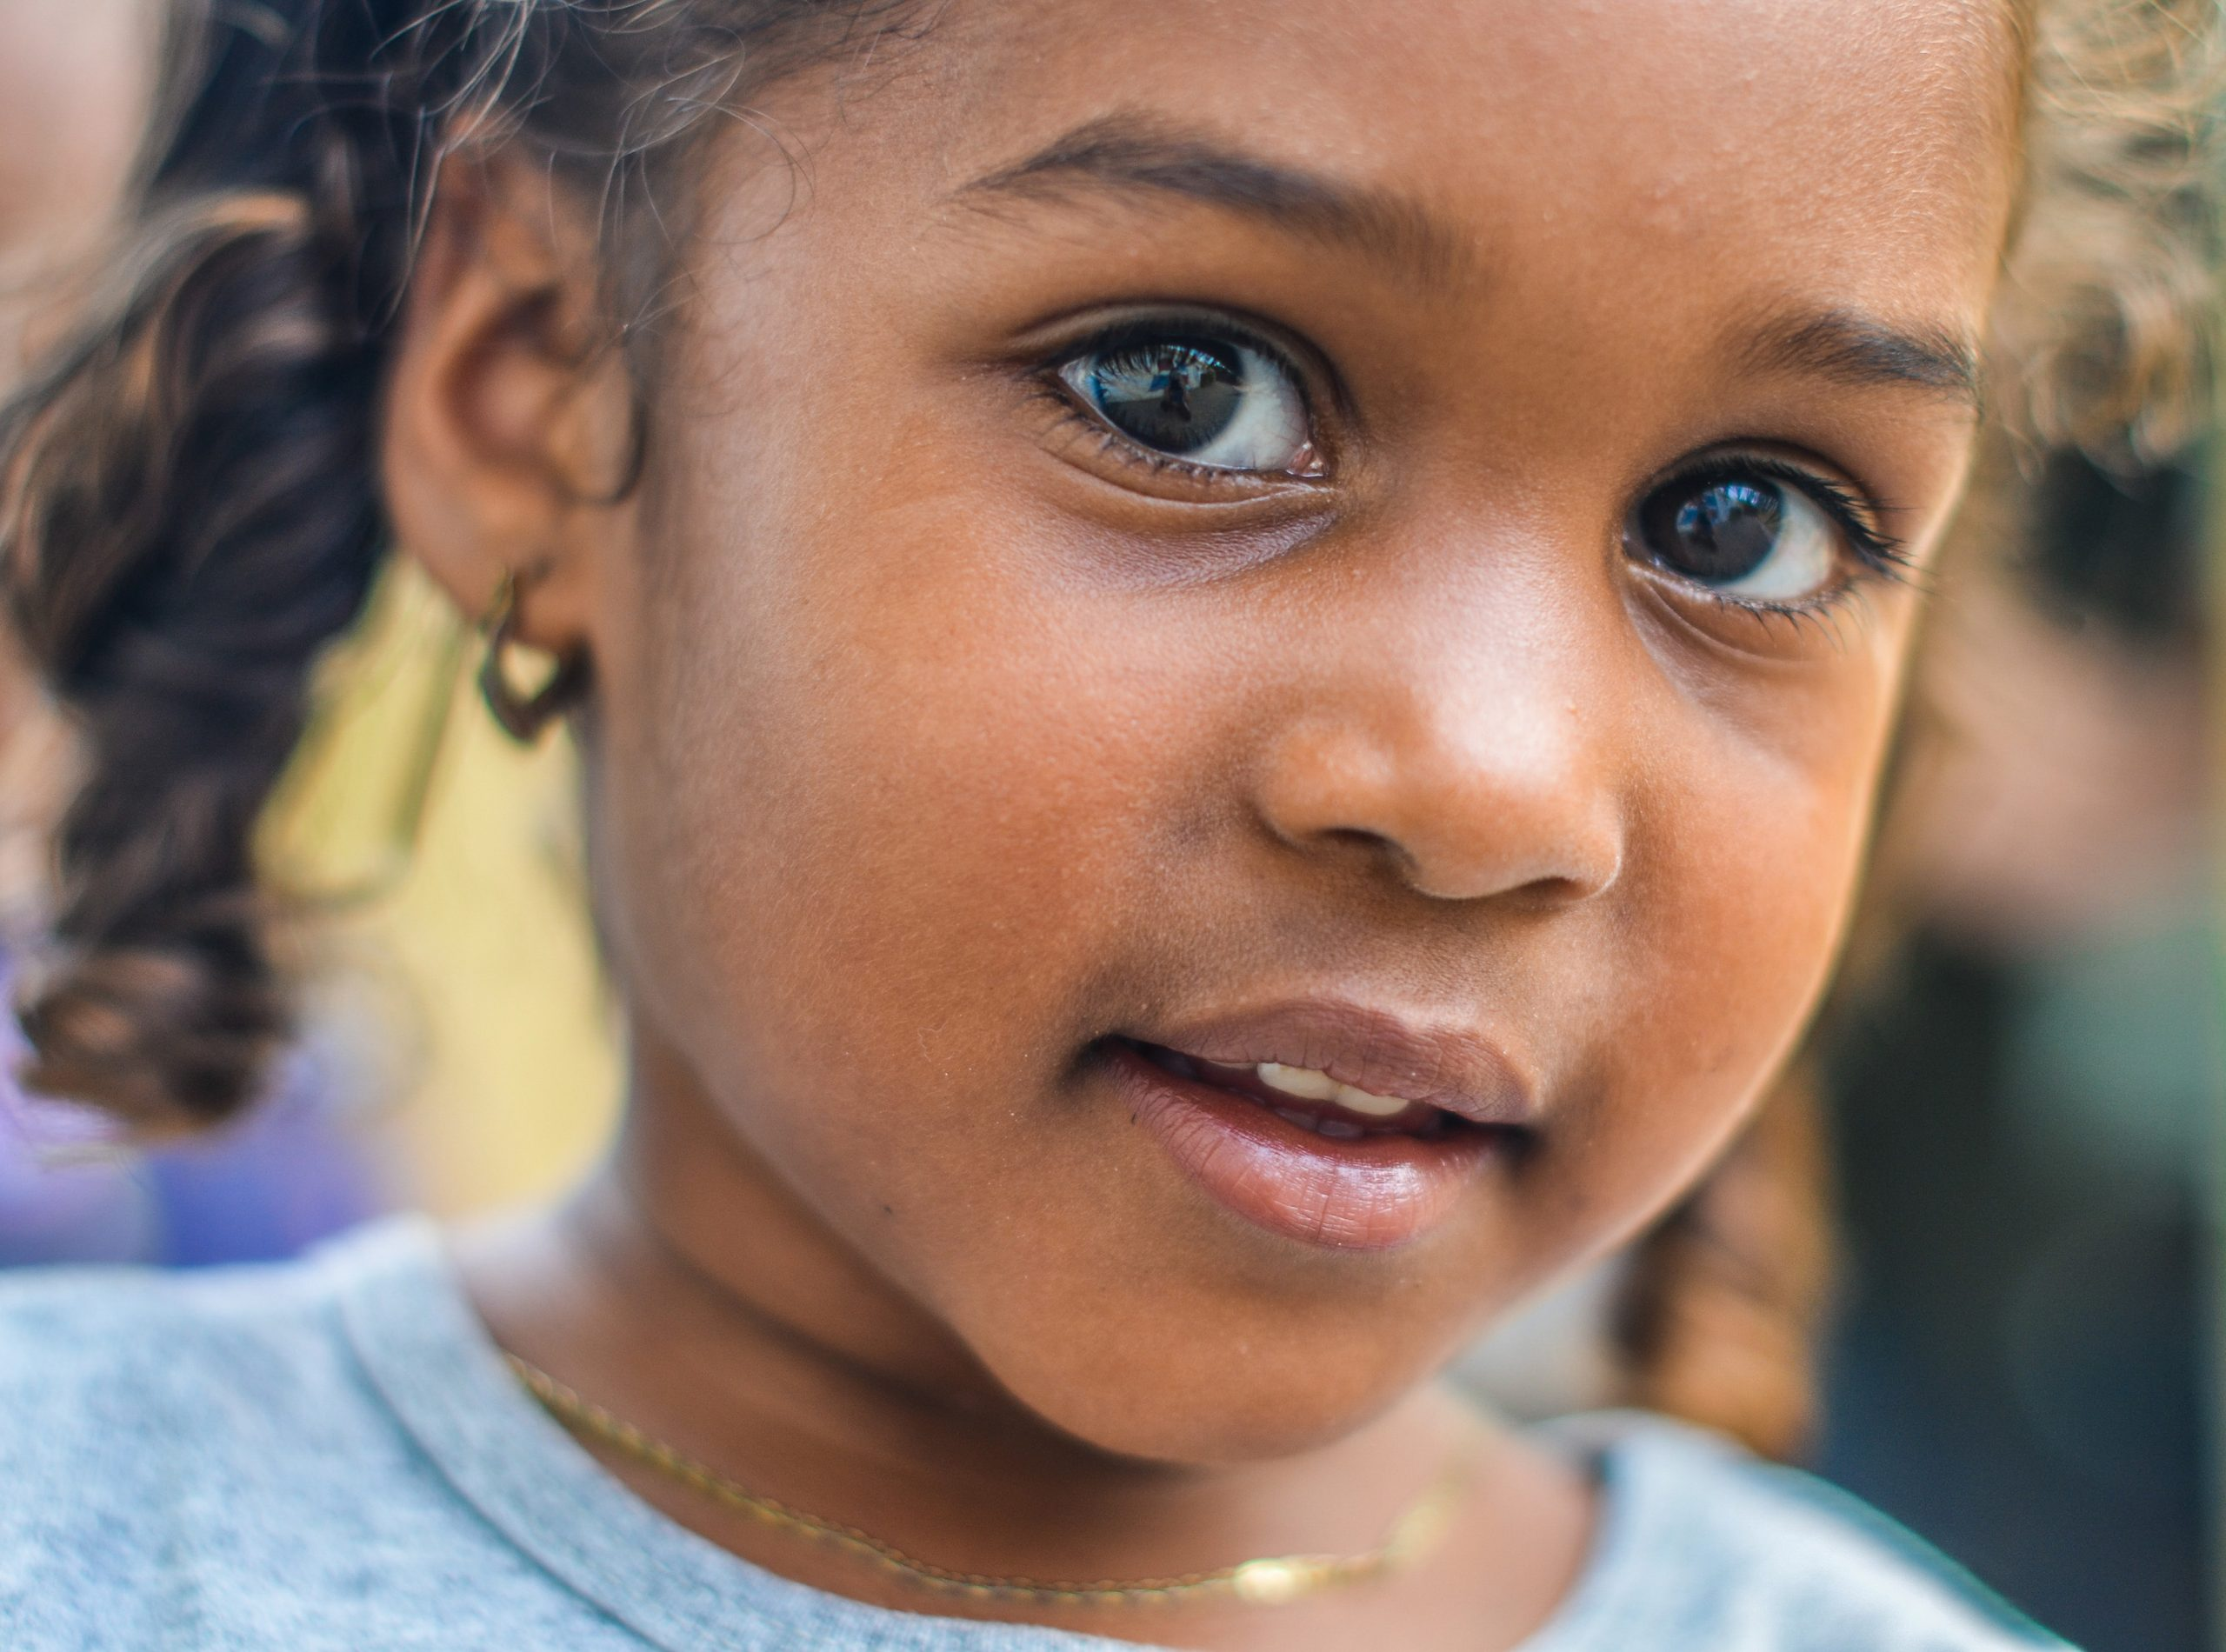 Close up photo of a young African American girl with a curious look on her face which could represent how she is learning resilience and confidence through her online anxiety treatment in Illinois.